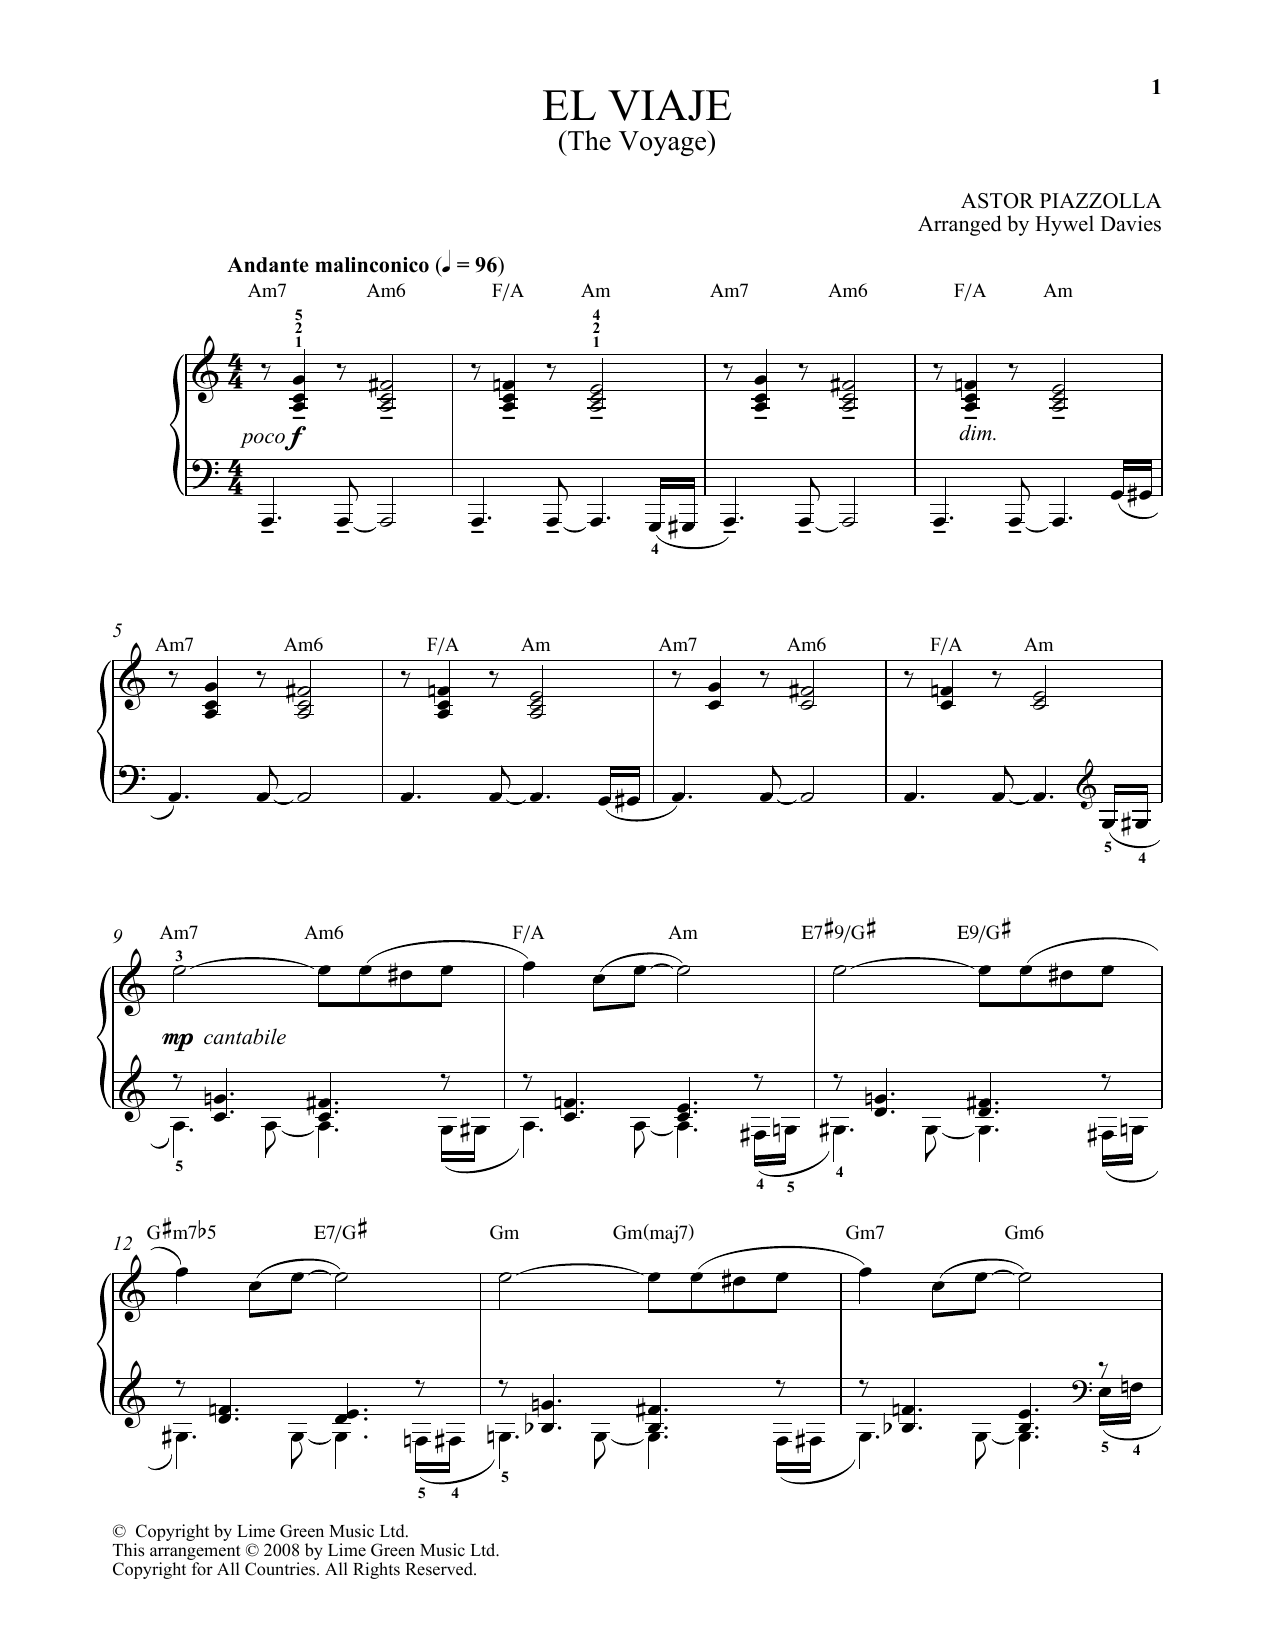 Astor Piazzolla El Viaje sheet music notes and chords. Download Printable PDF.